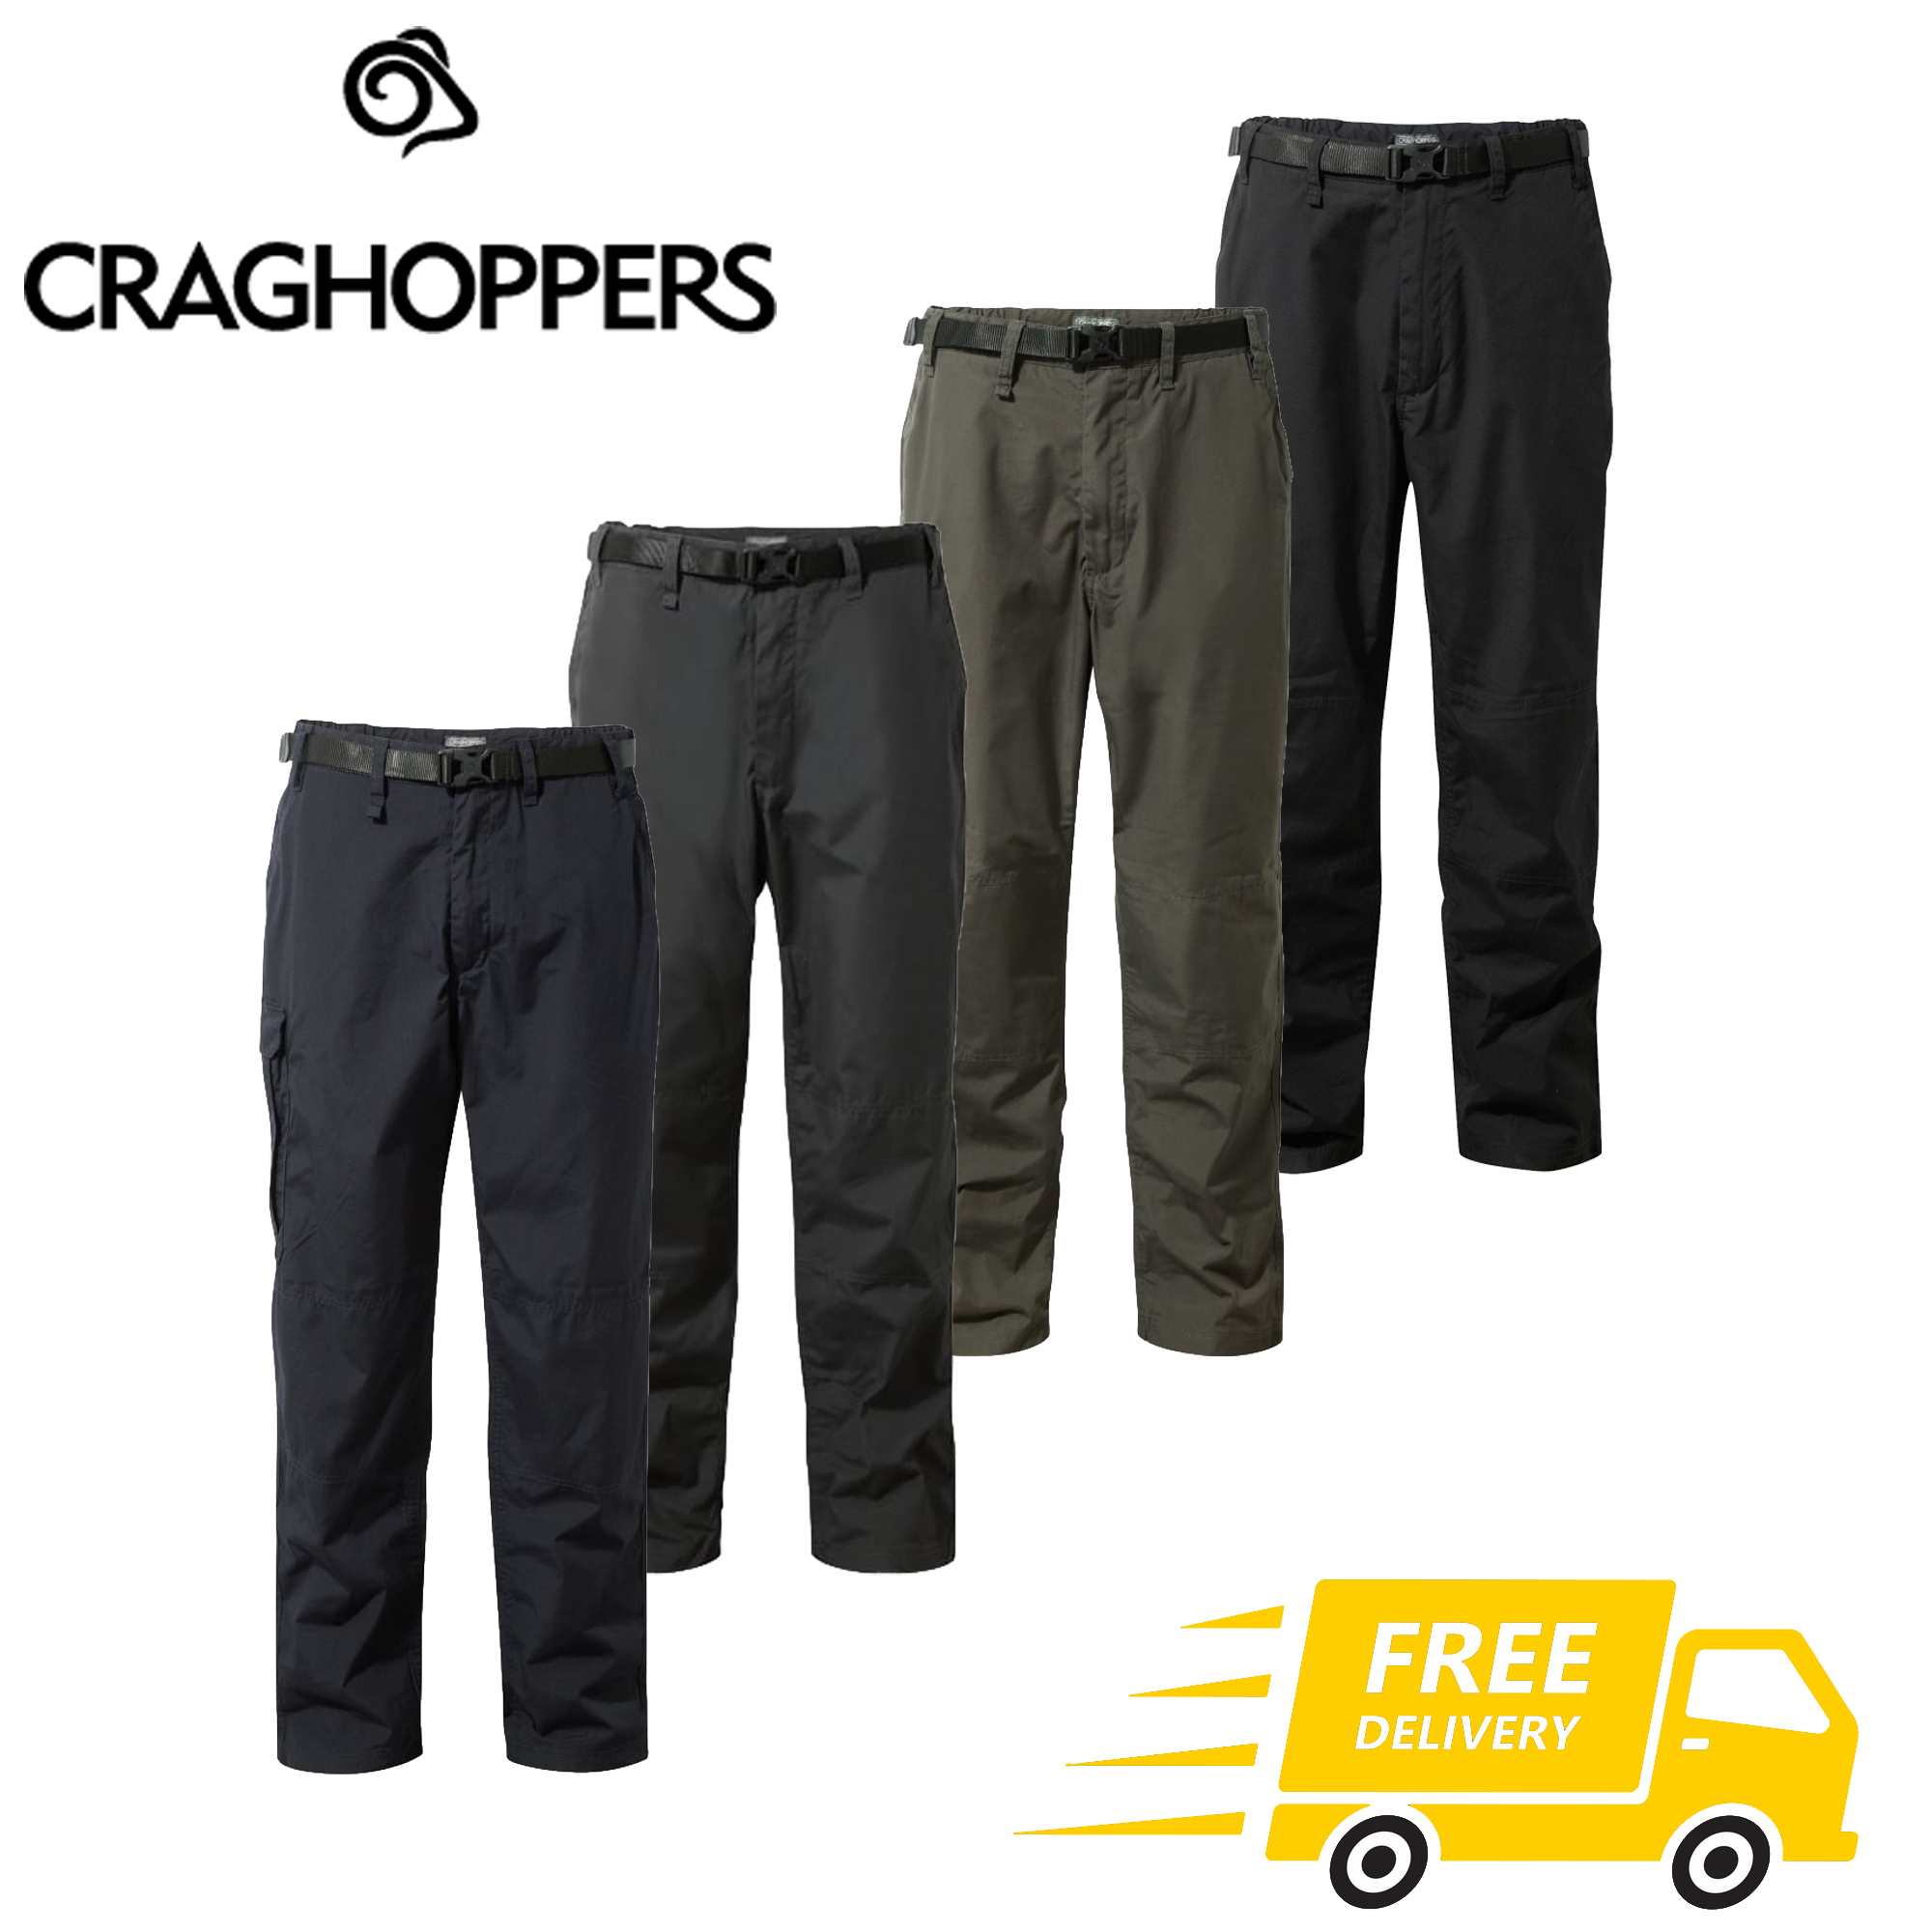 Craghoppers Mens Classic Kiwi Pants Insect-Repellent Lightweight Quick Dry Trousers with Sun Protection Fabric